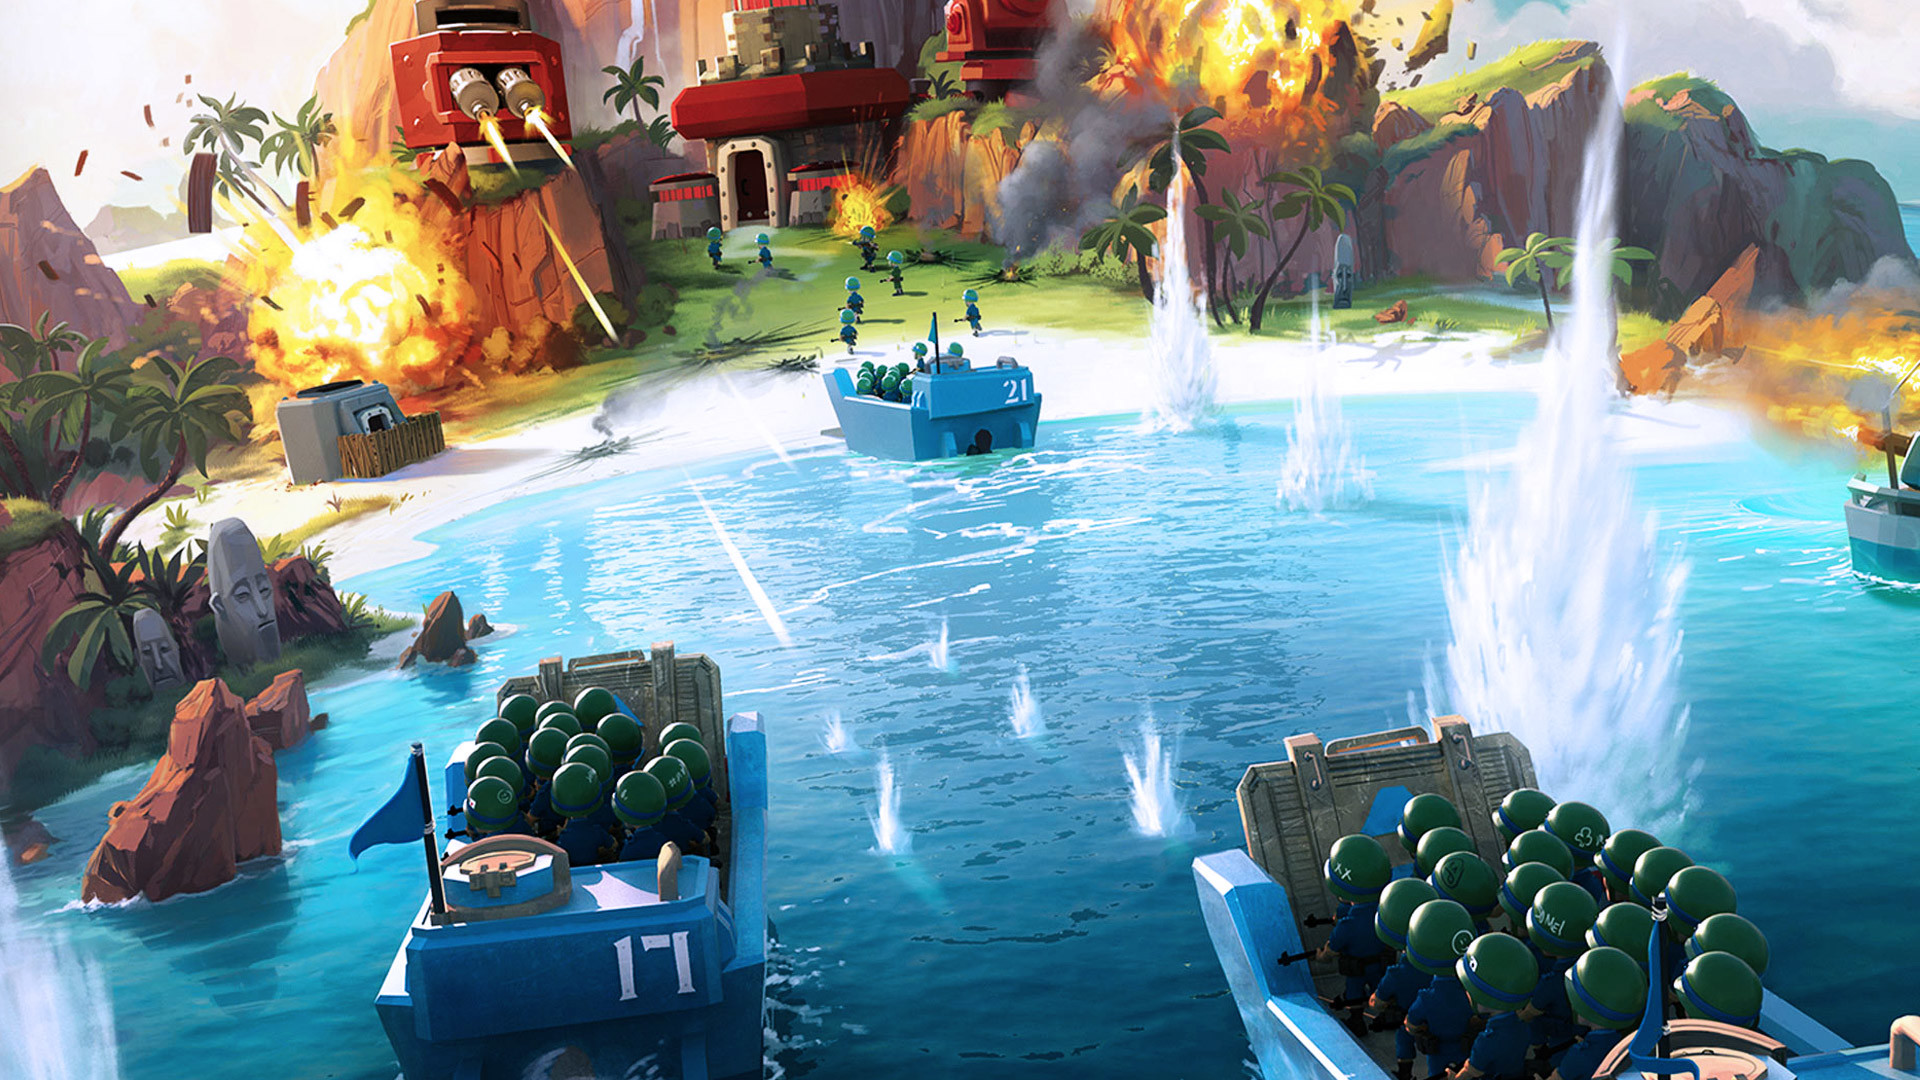 Boom beach for pc,laptop free download on windows (10/8/7 ) and.